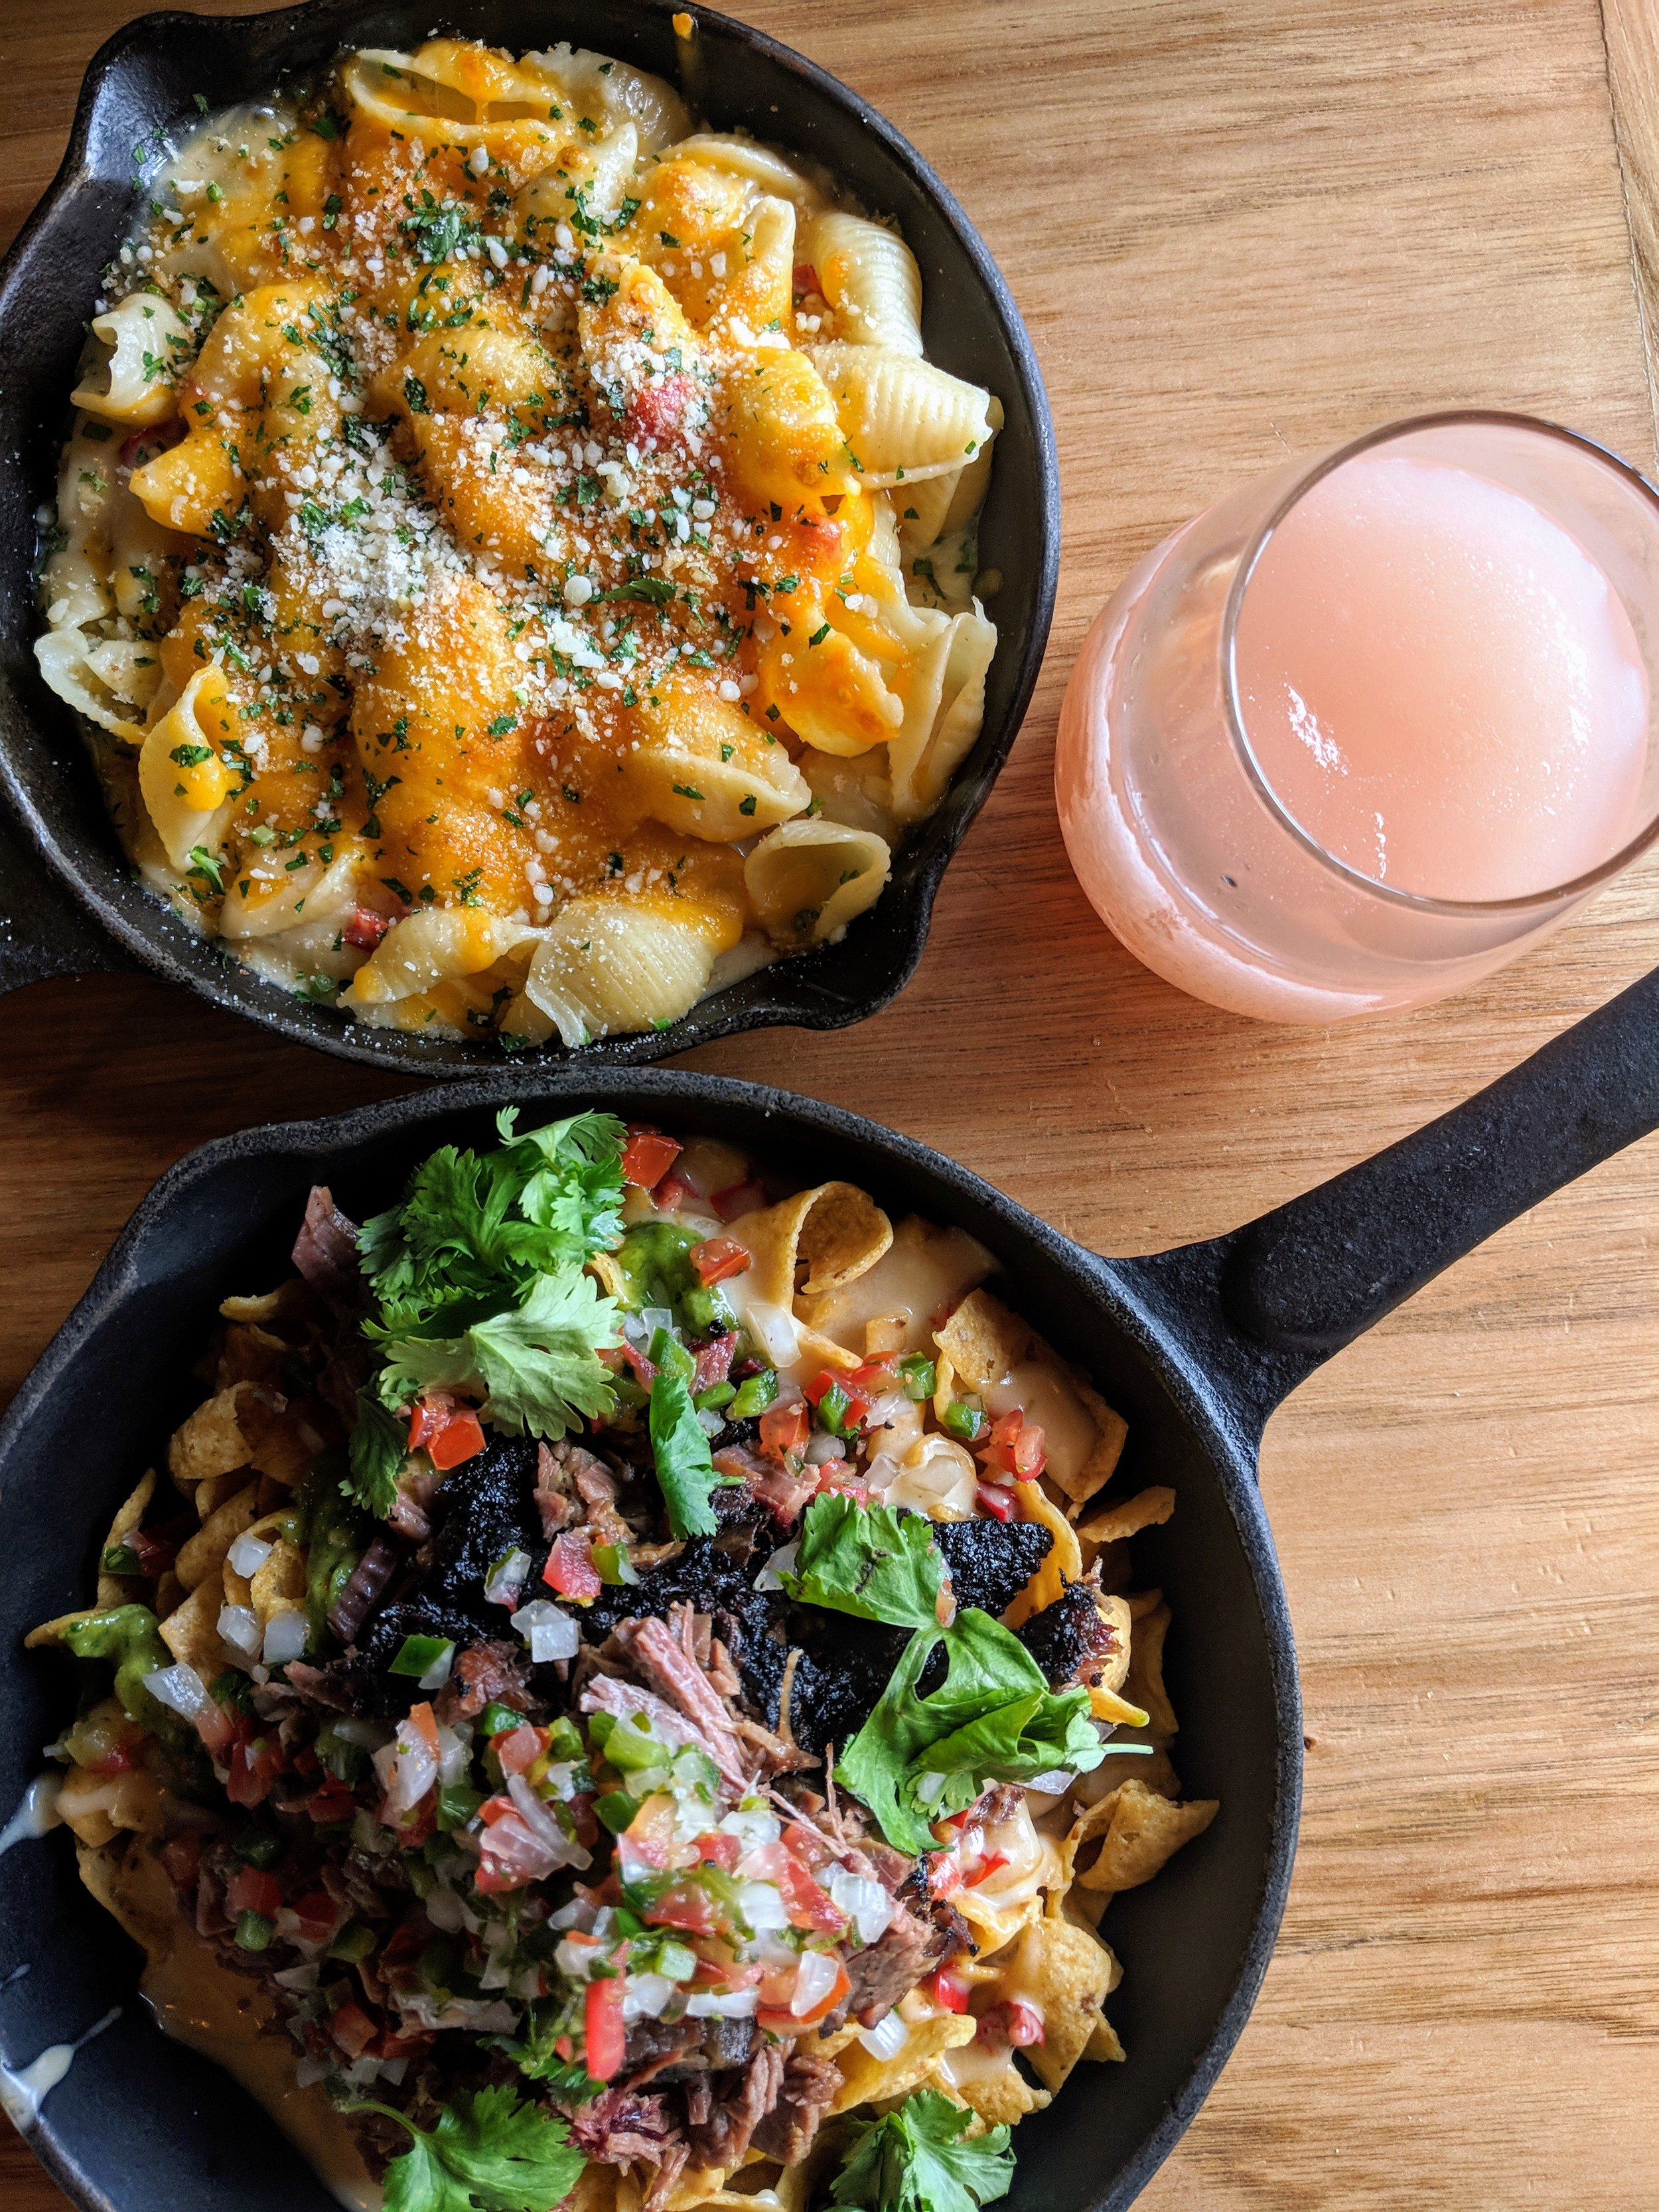 Frito pie, mac 'n' cheese, and frosé